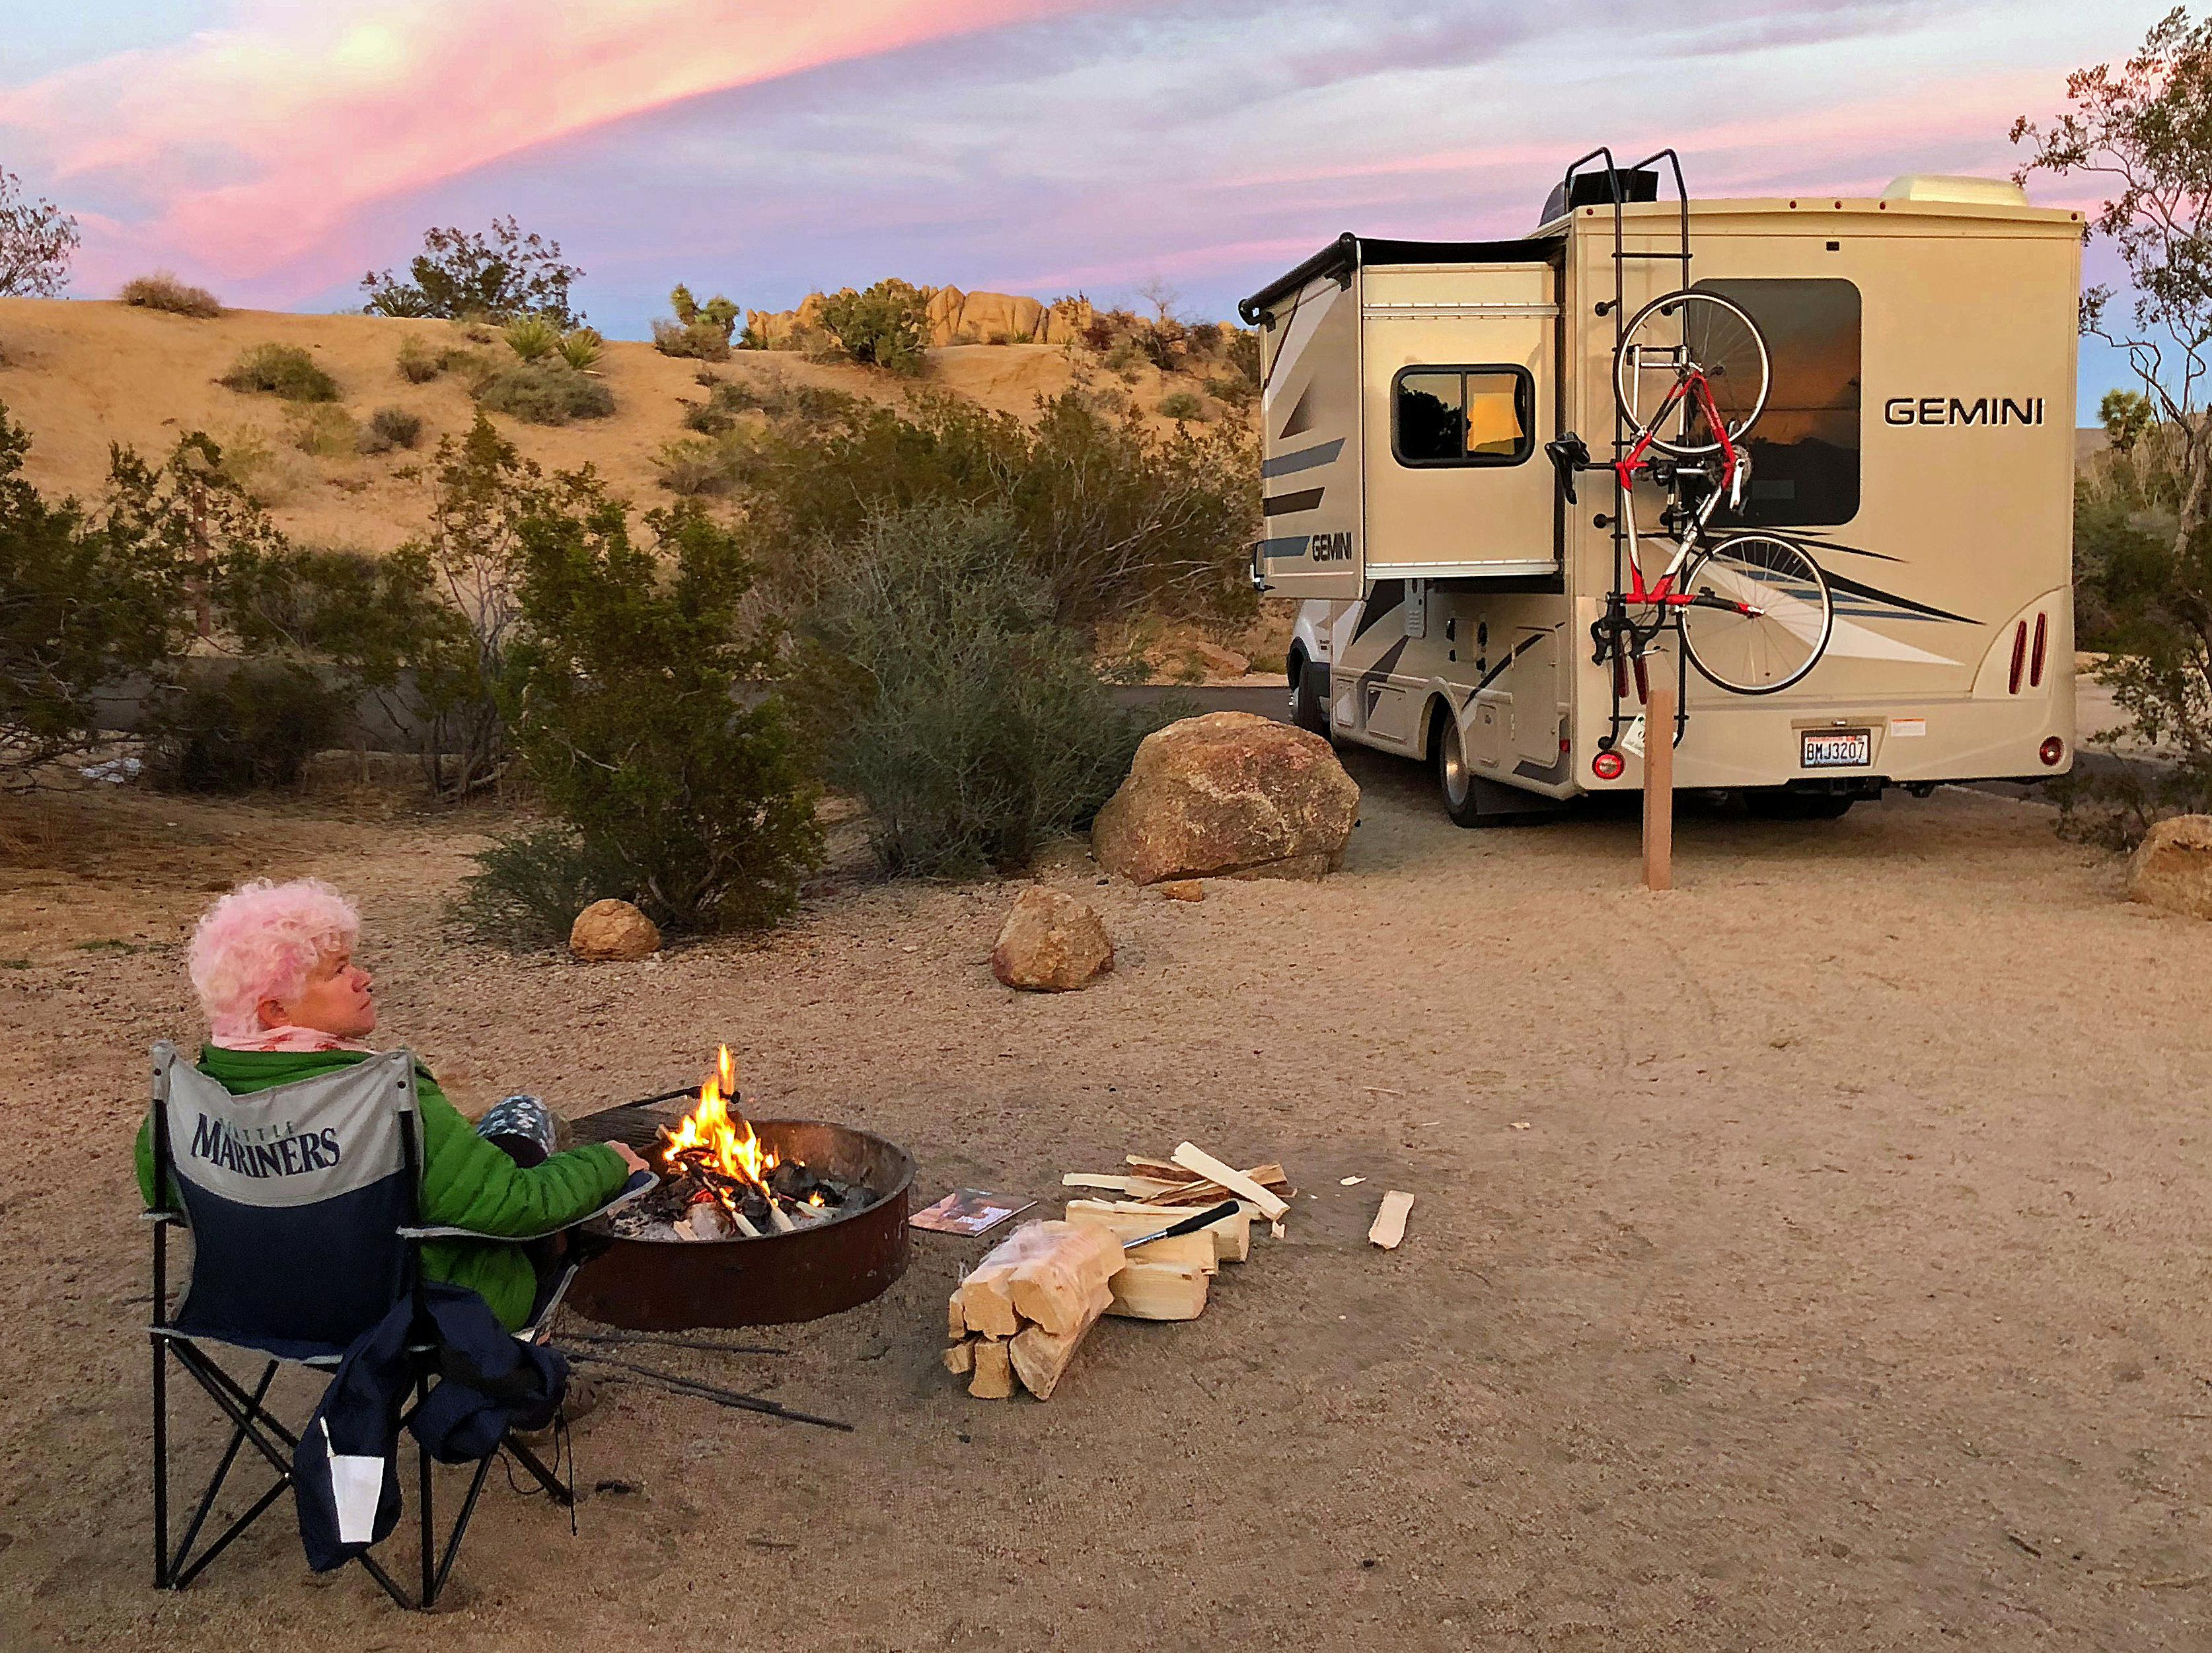 Happy campers: National parks offer scenic, cheap vacation